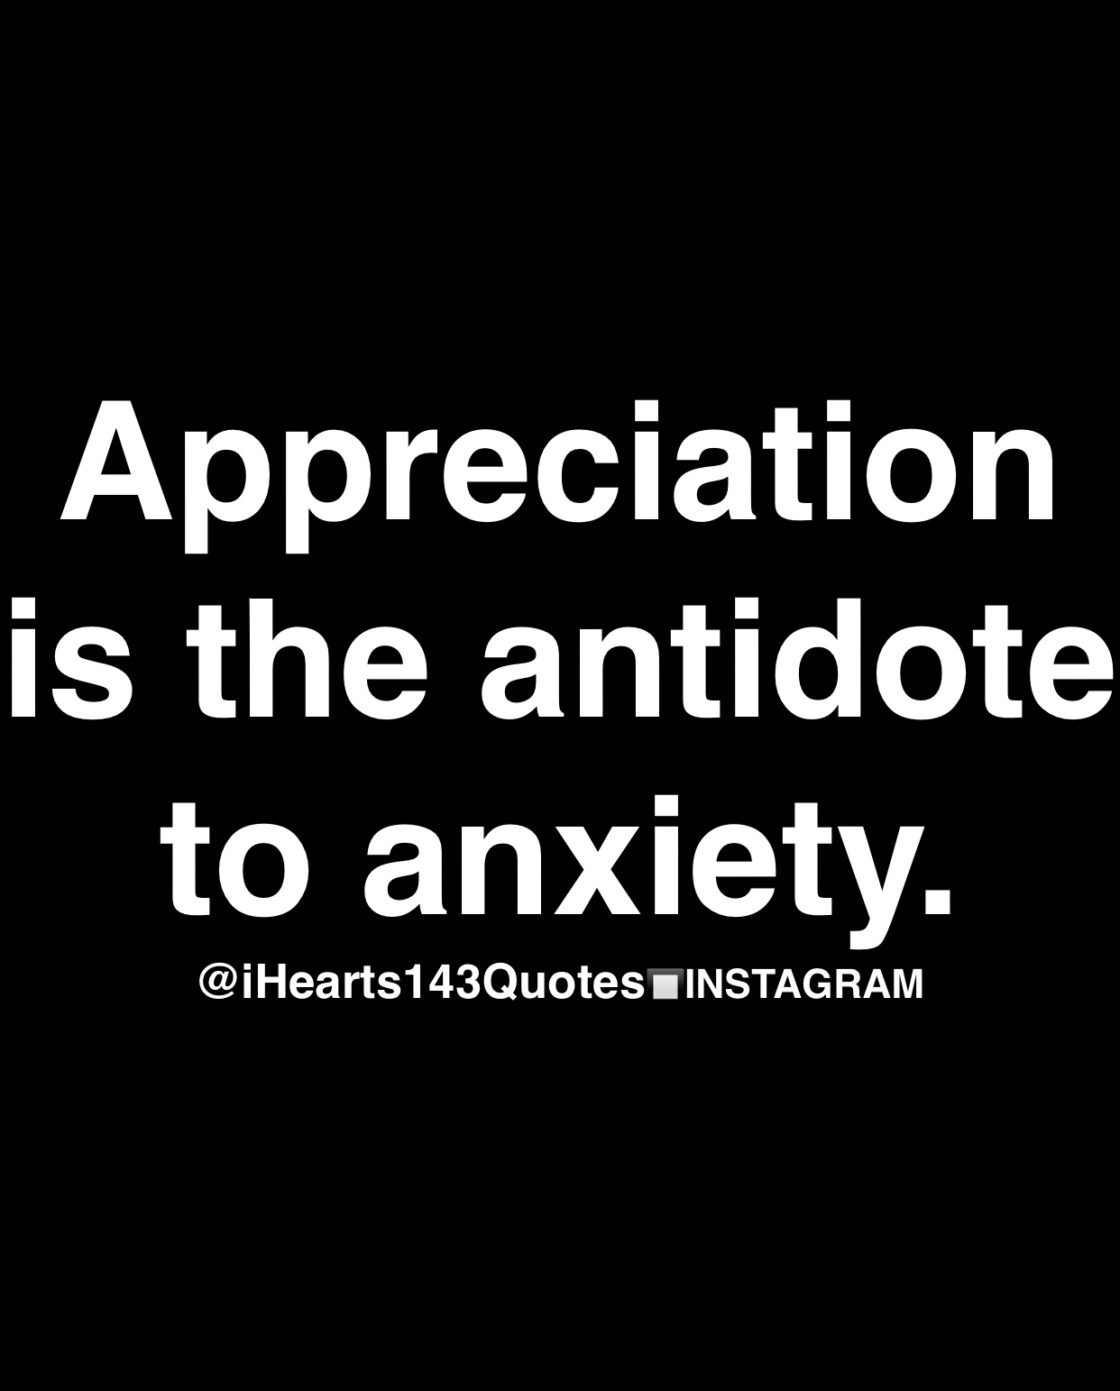 Image of: Things Official Ihearts143quotes Blog Feed Since 2014 Motivational And Inspirational Quotes Appreciation Is The Antidote To Anxiety Ihearts143quotes Relationship Problem Page Ihearts143quotes